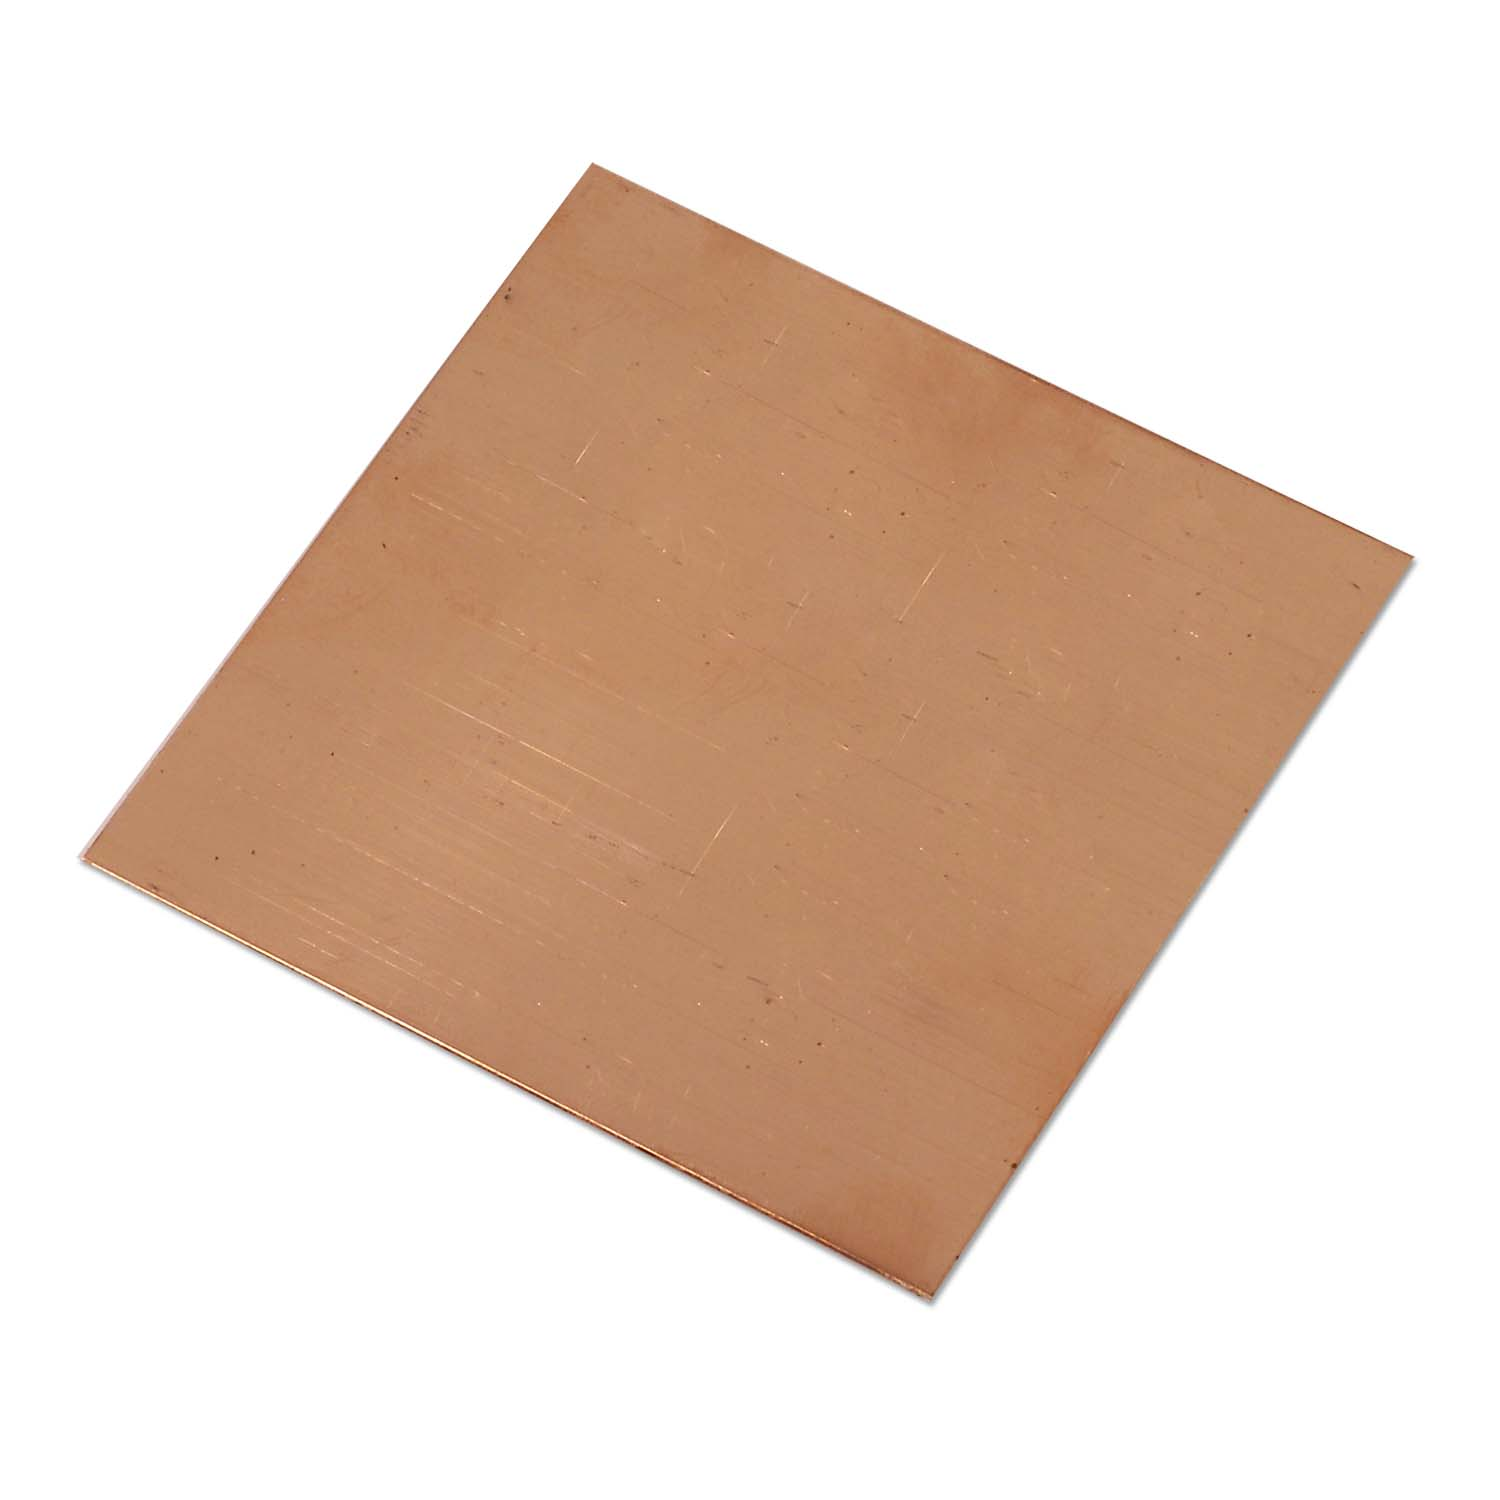 Copper Sheet 26 Gauge Size 3x3 Inch Where To Find Sheet